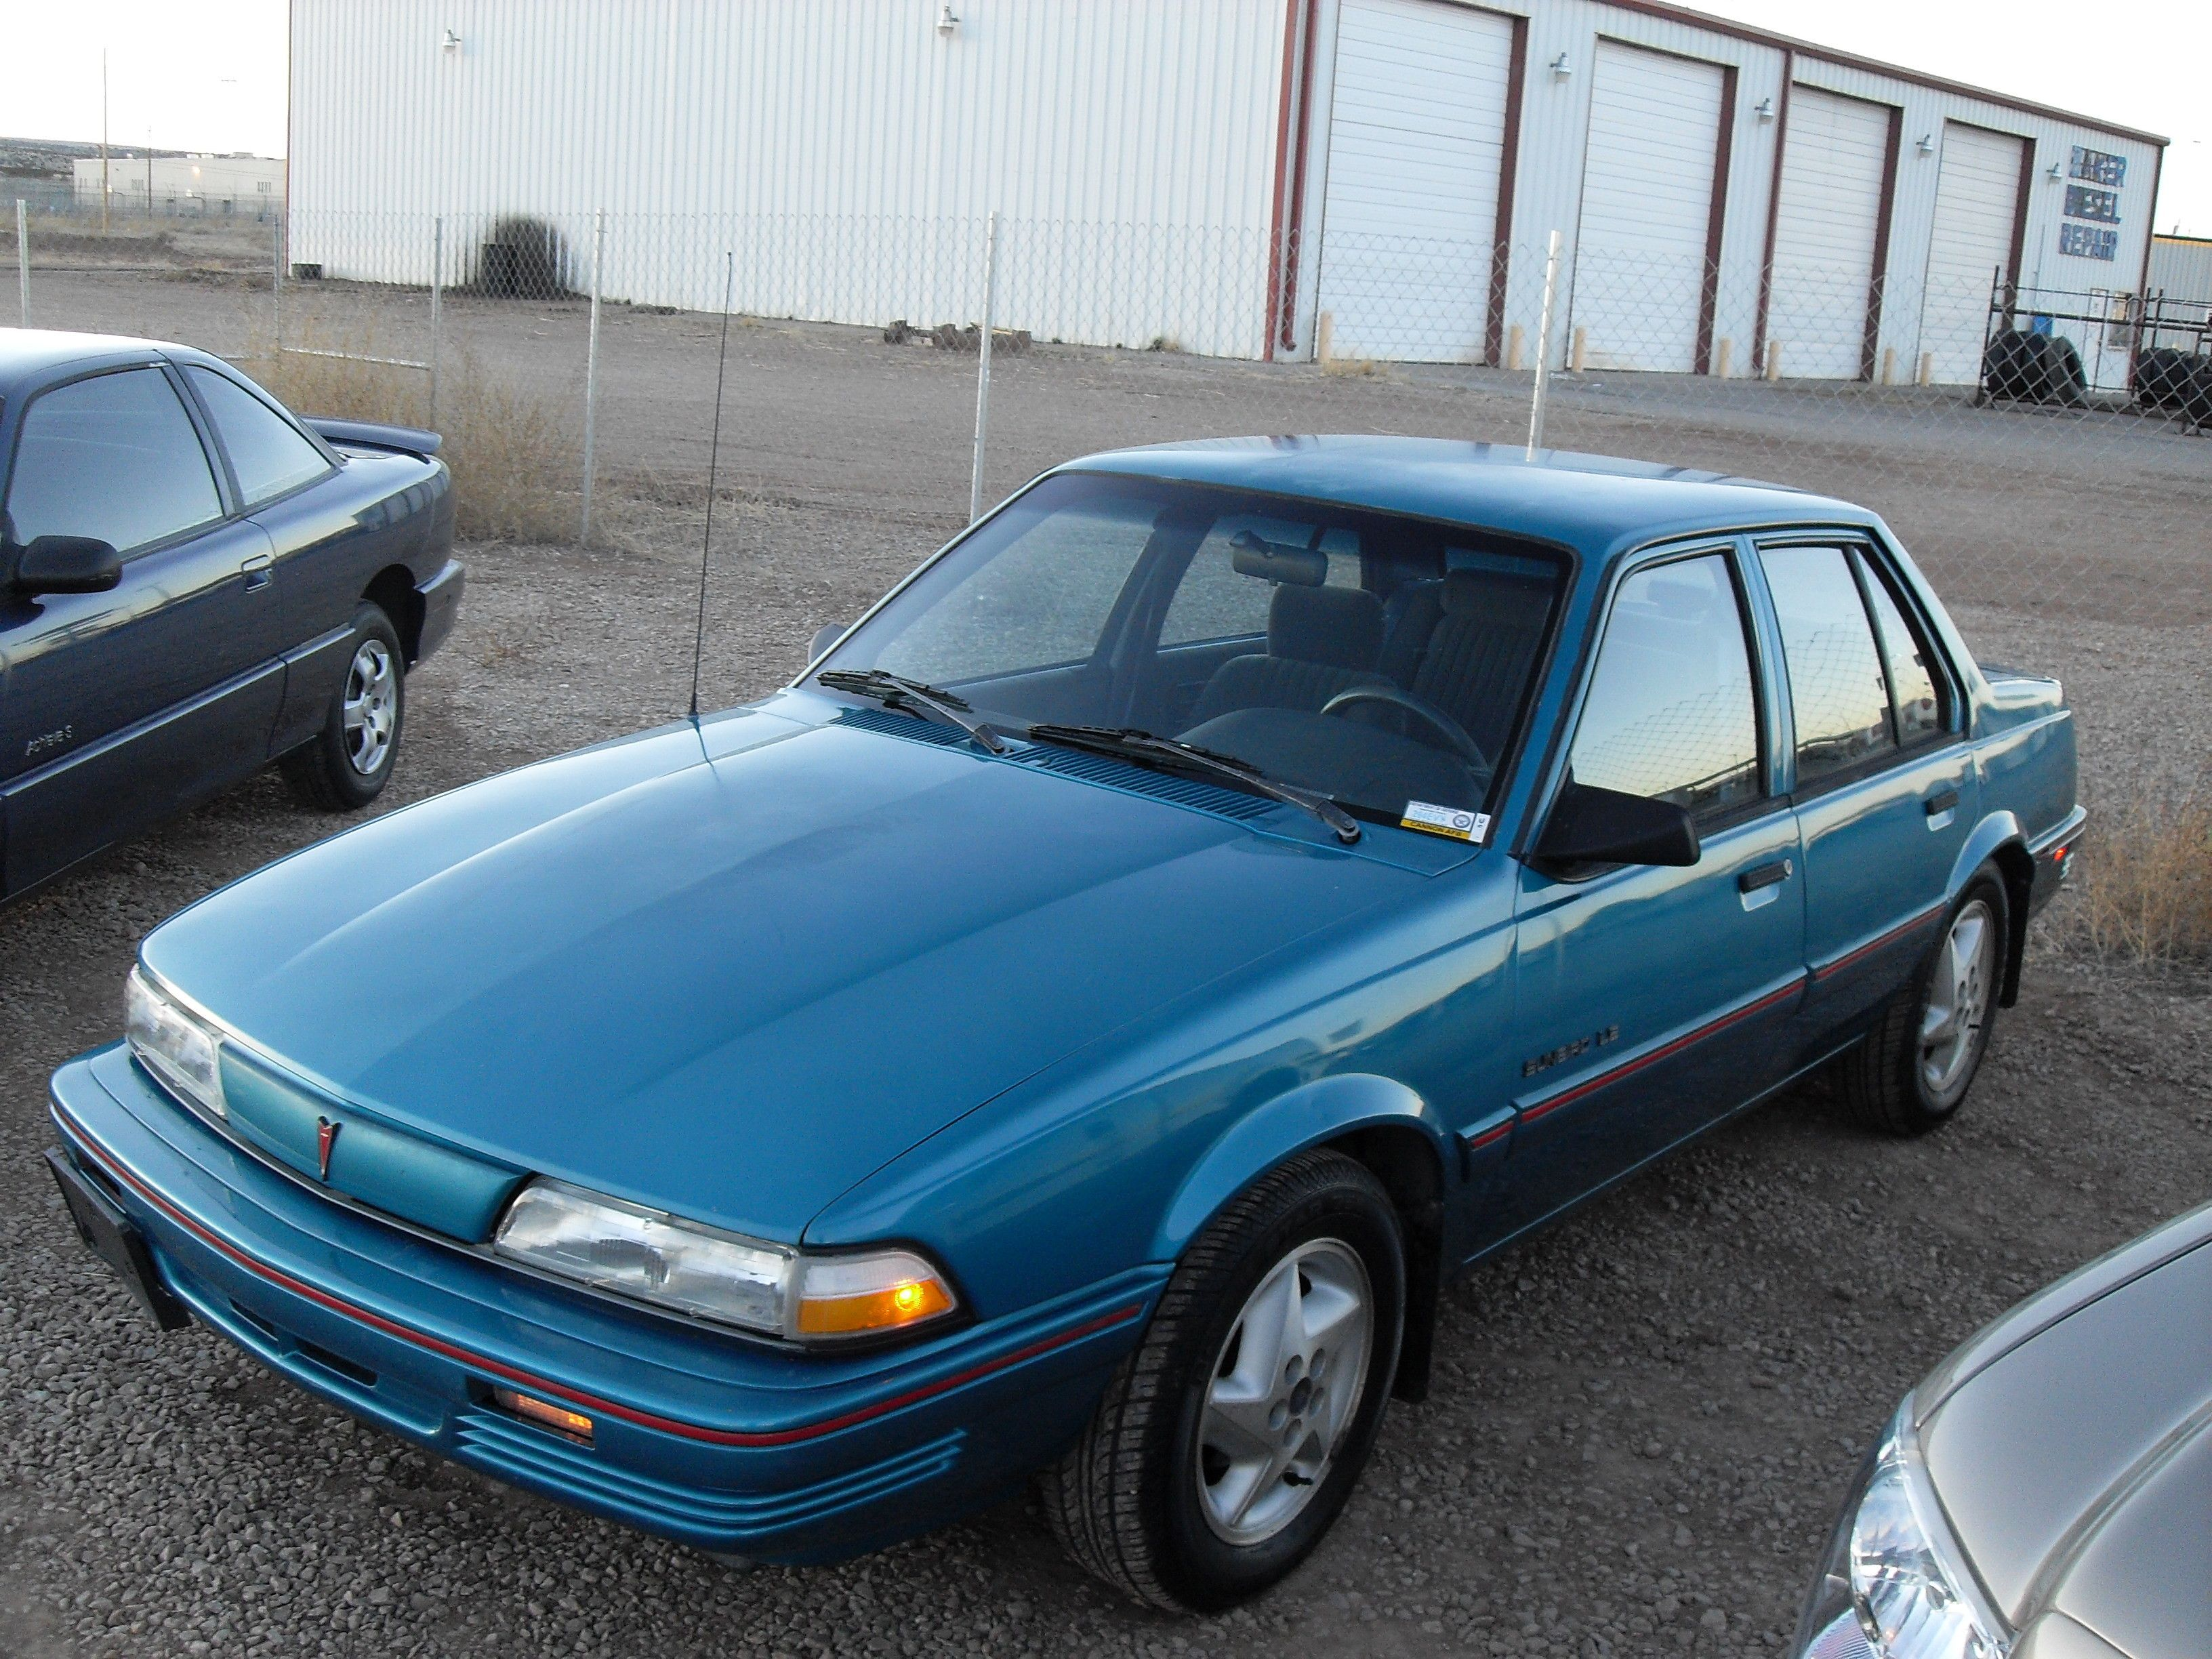 1992 pontiac sunbird 4 door the wife s aqua blurr